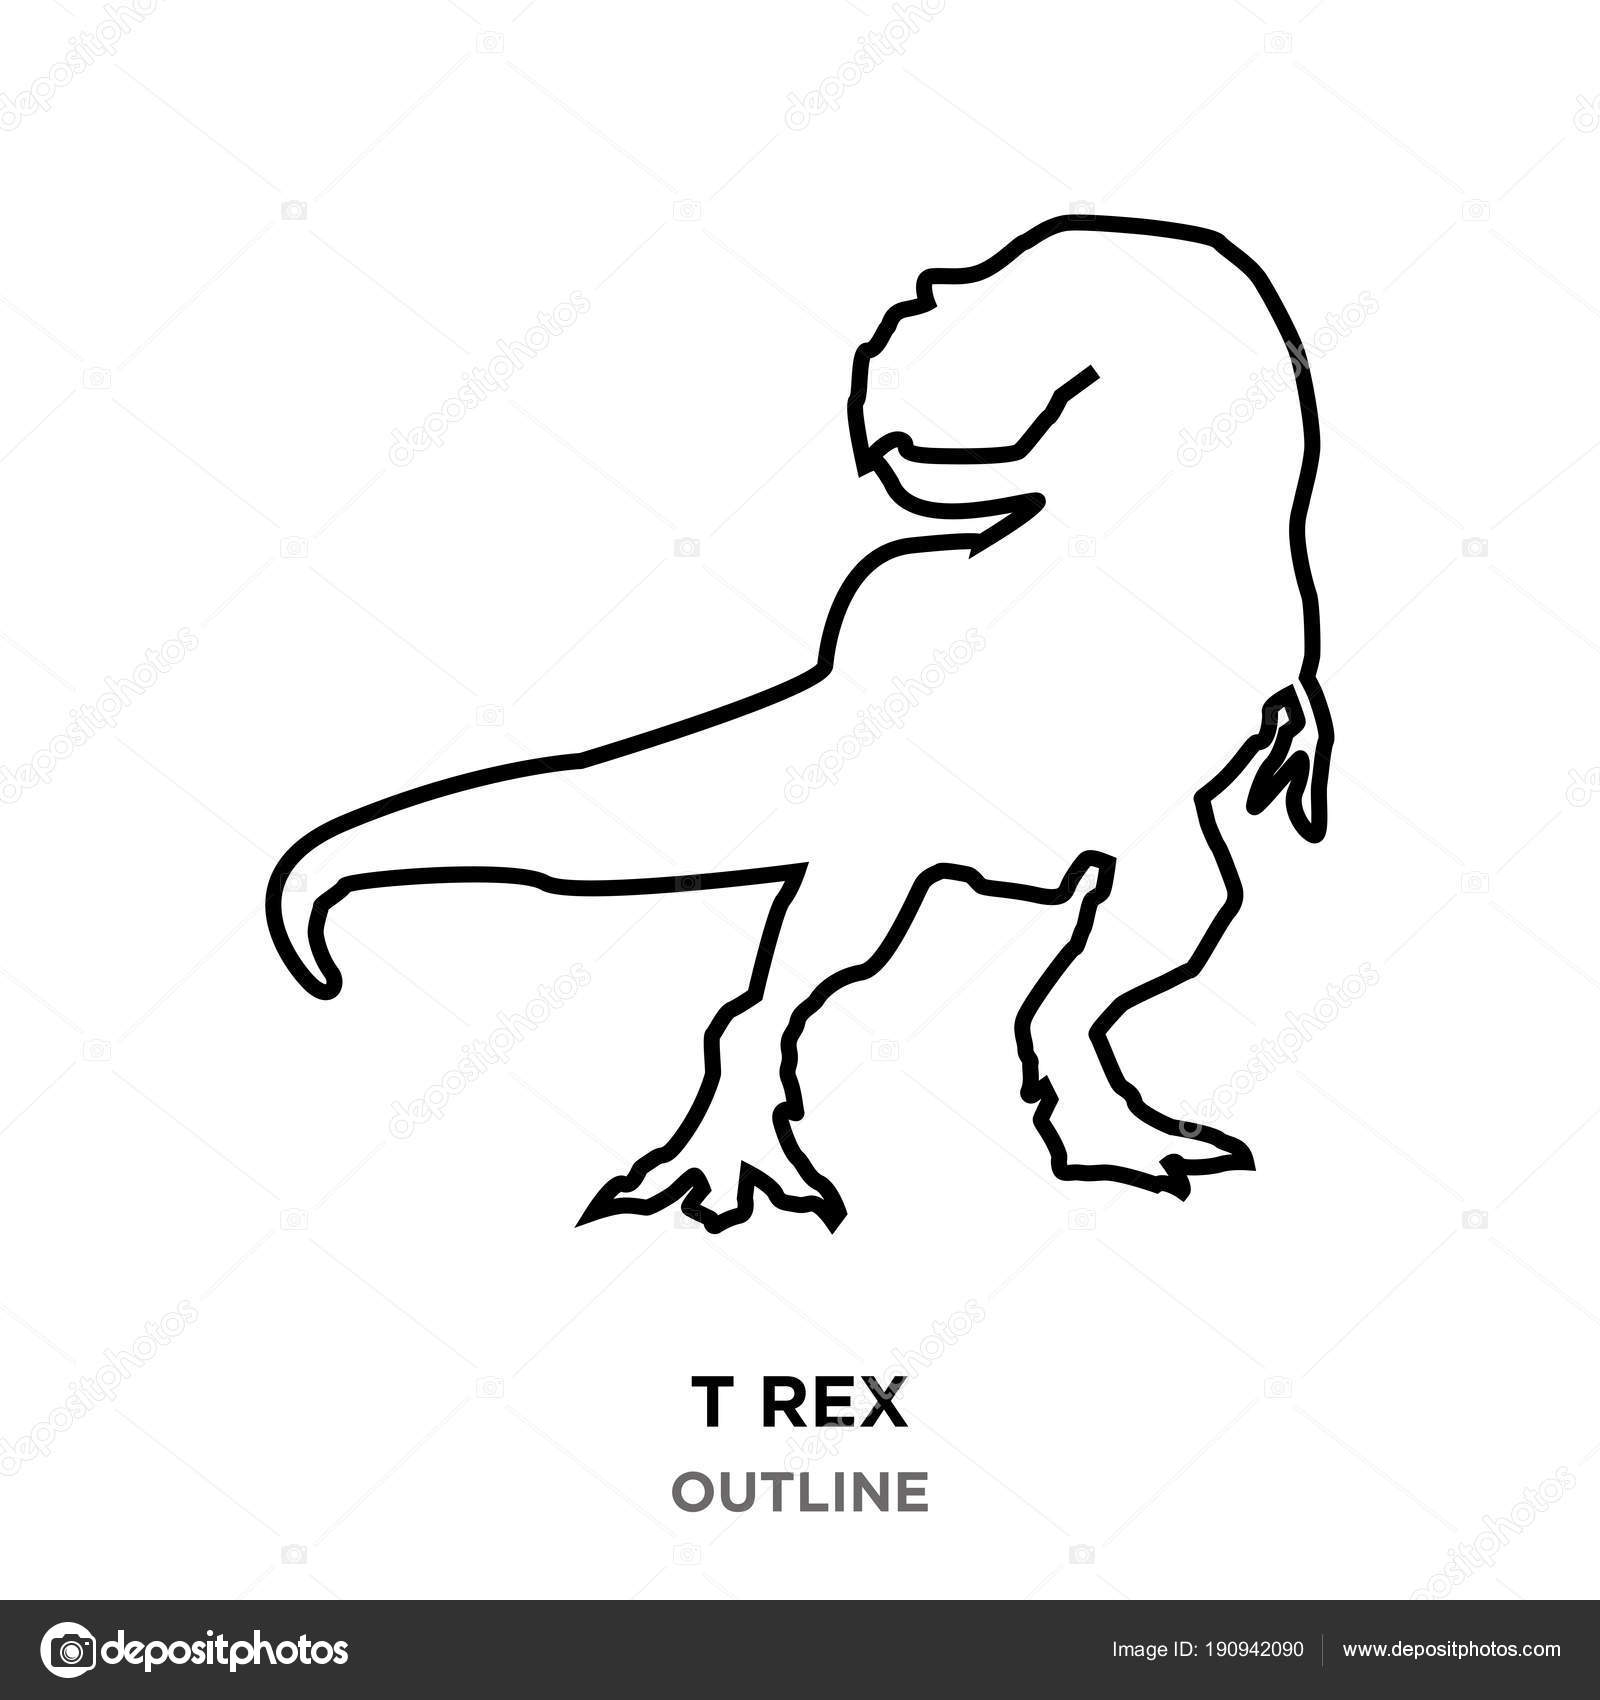 T Rex Outline On White Background Looking Back